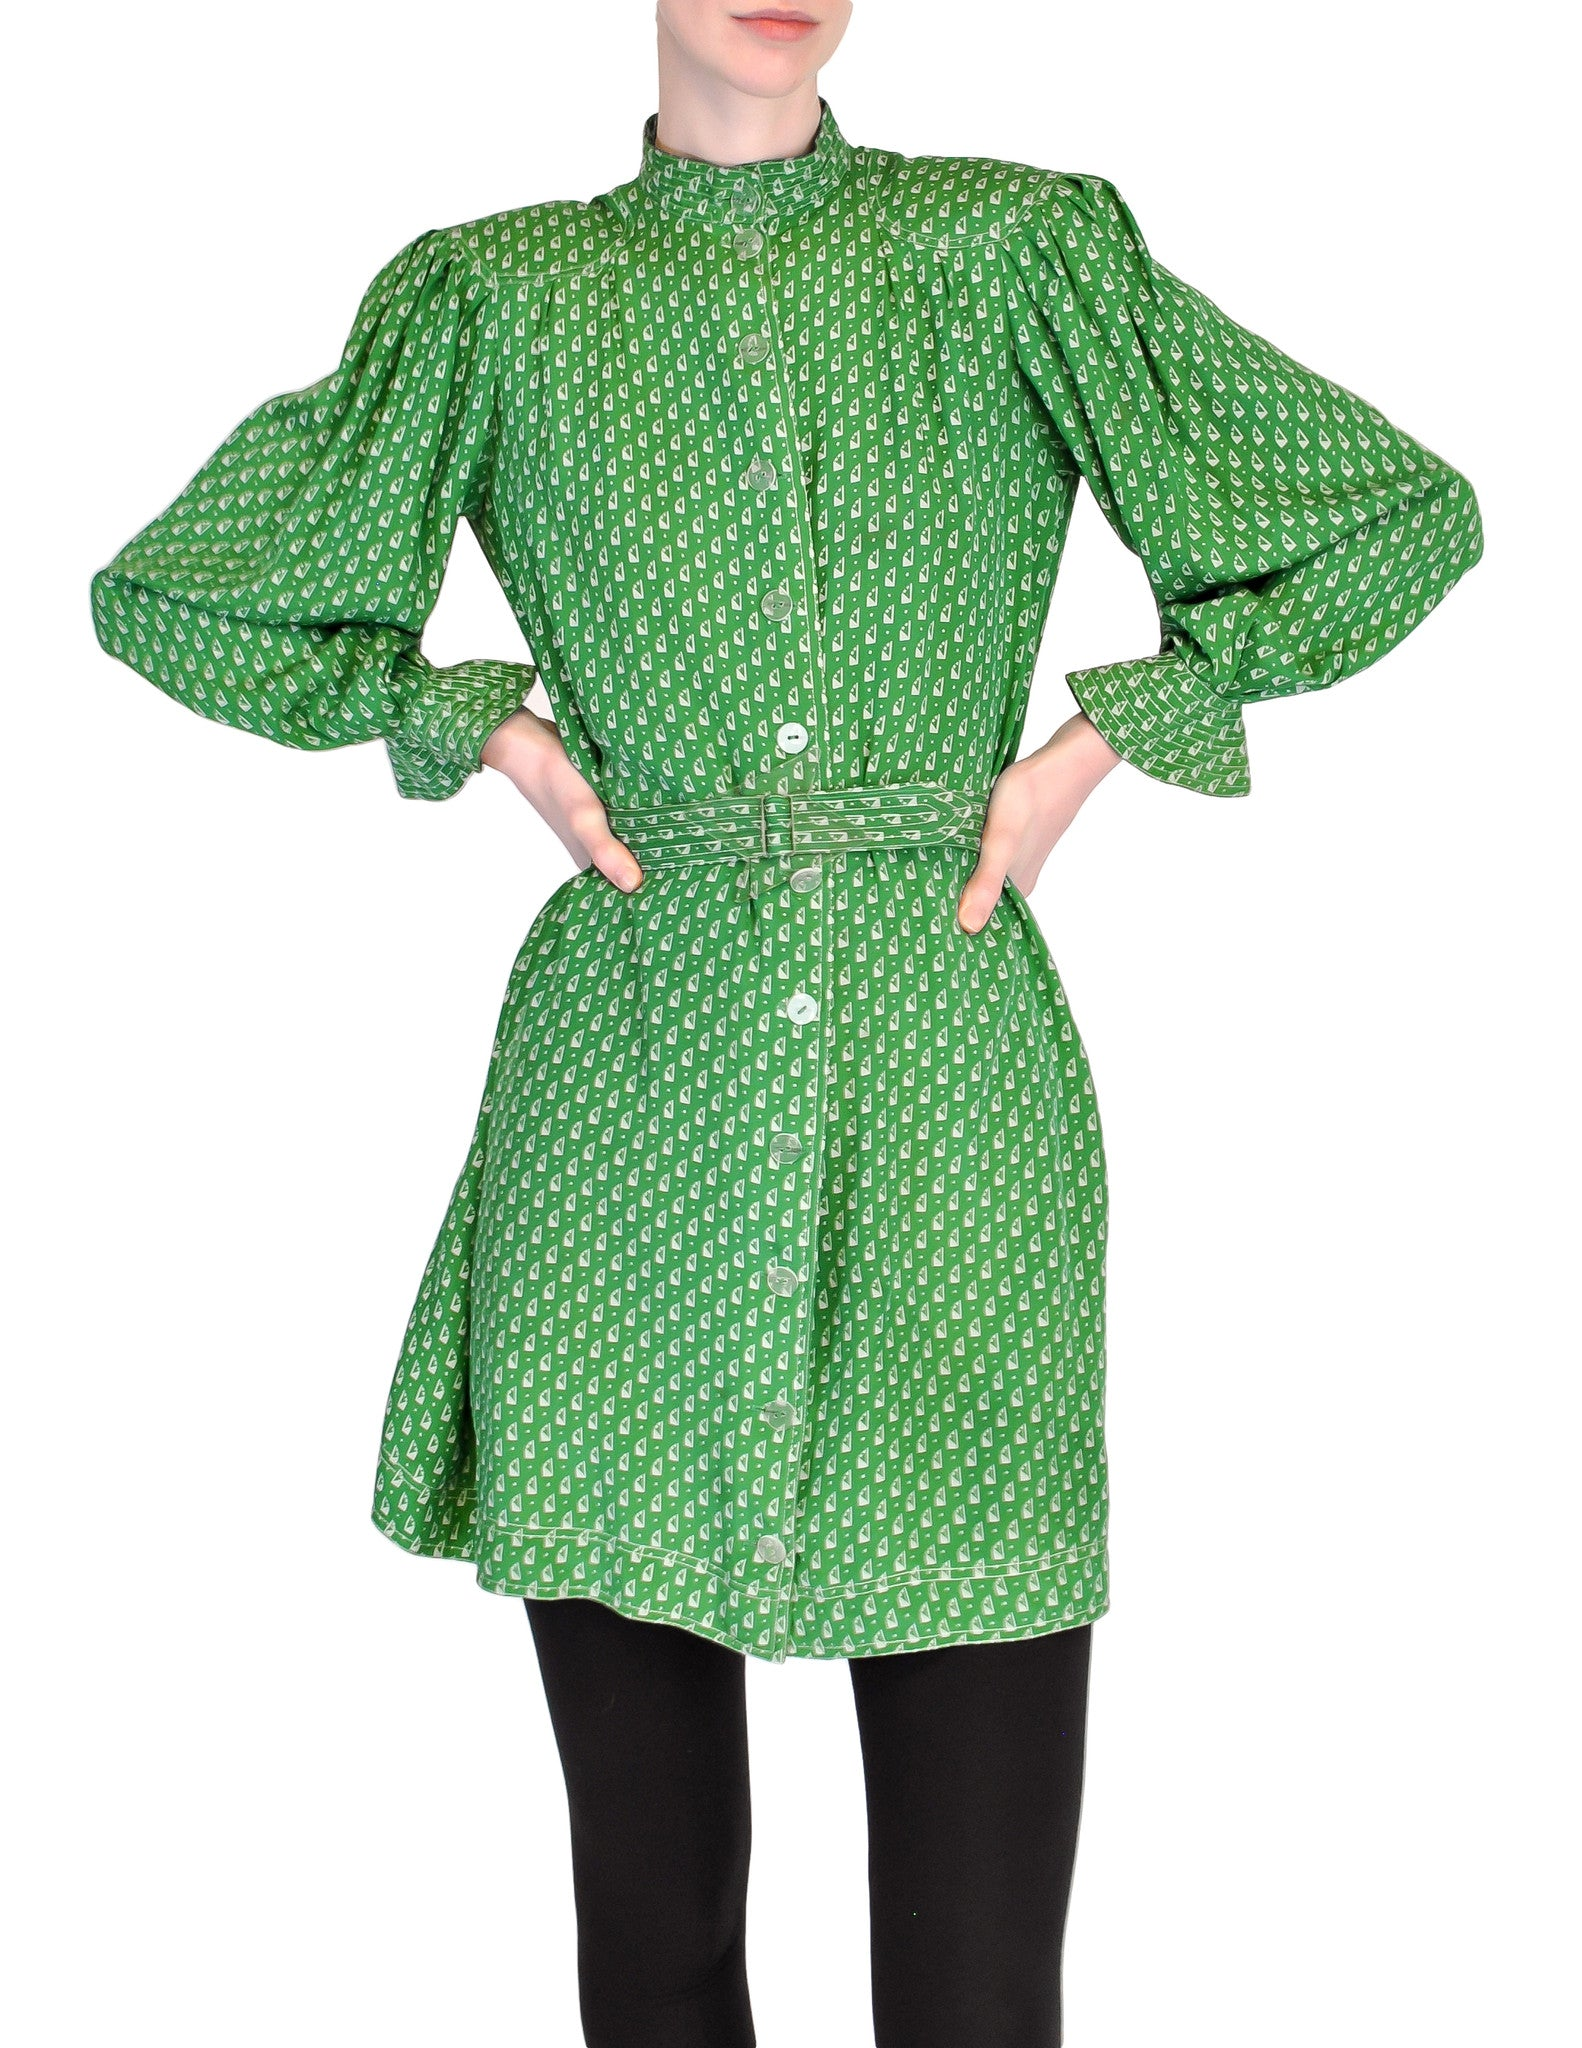 Jean Muir Vintage Green Geometric Button Up Tunic Dress - Amarcord Vintage Fashion  - 1